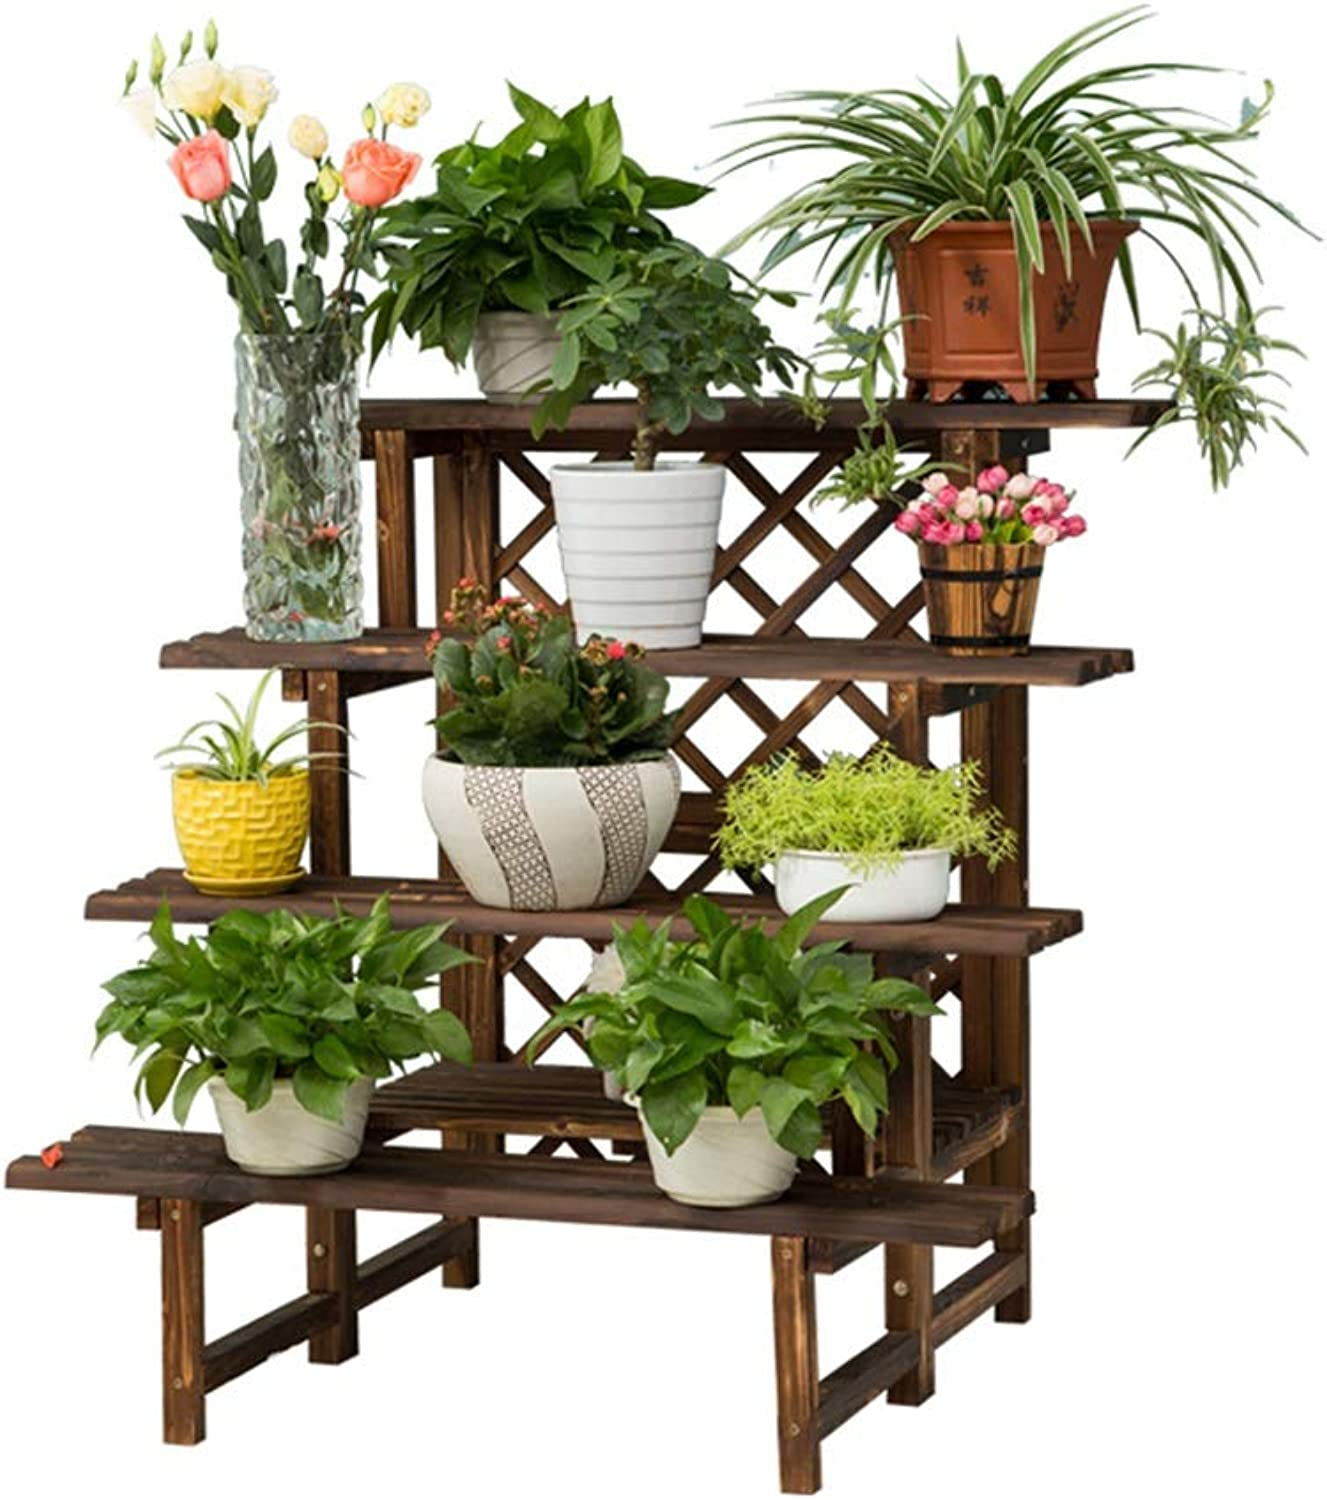 C-J-Xin Creative Flower Stand, Shelf Antiseptic Thicken Solid Wood Multi-Layer Space Living Room Bedroom Balcony Multifunction Plant Flower Stand (Size   90  80  90cm)